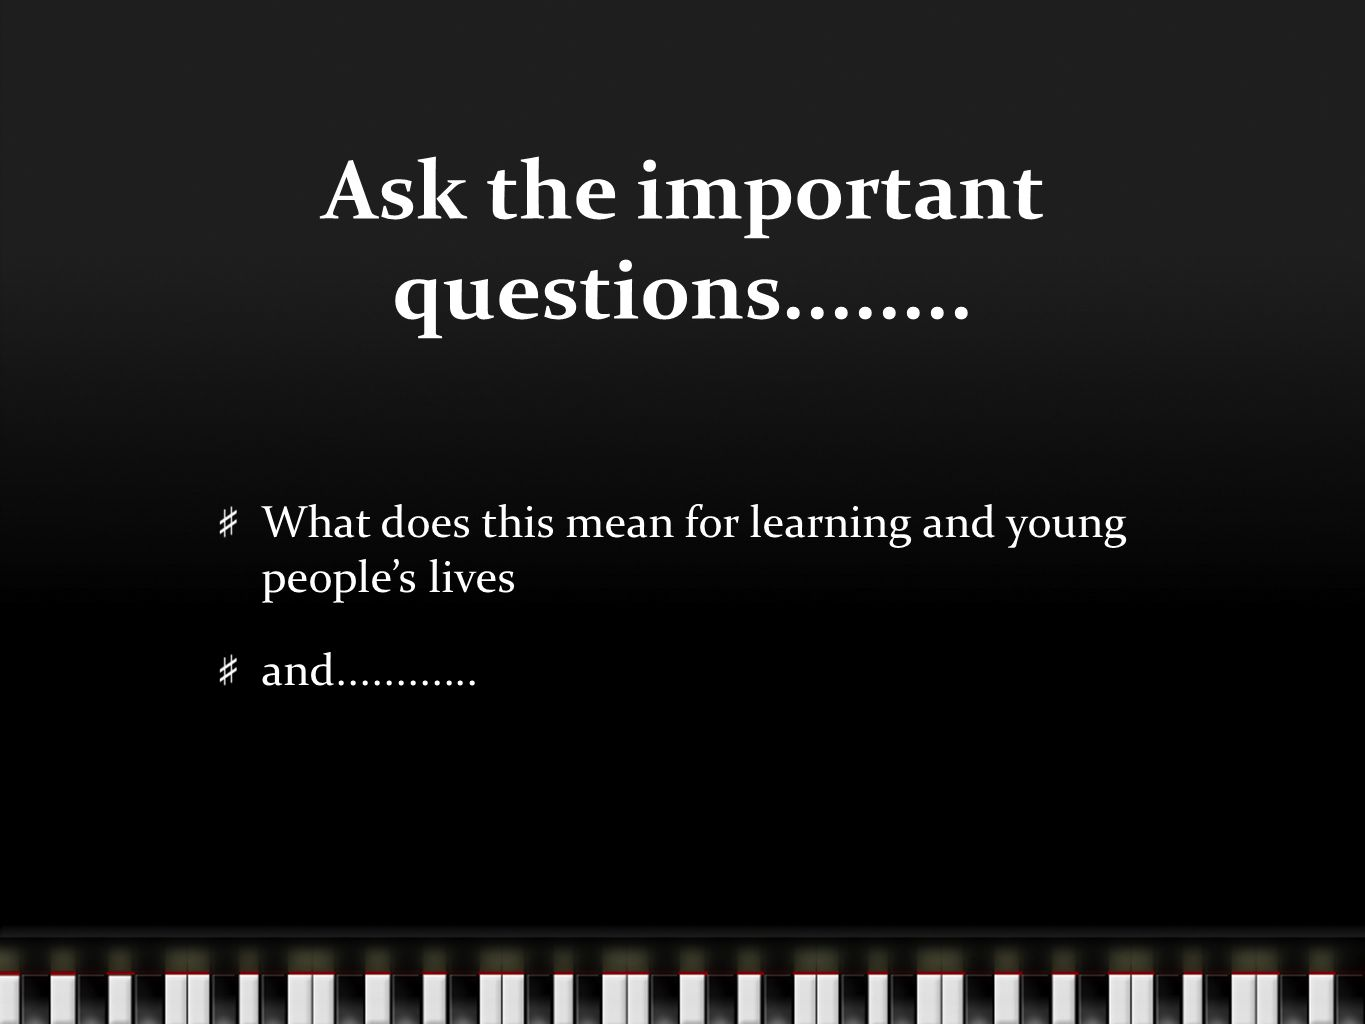 Ask the important questions........